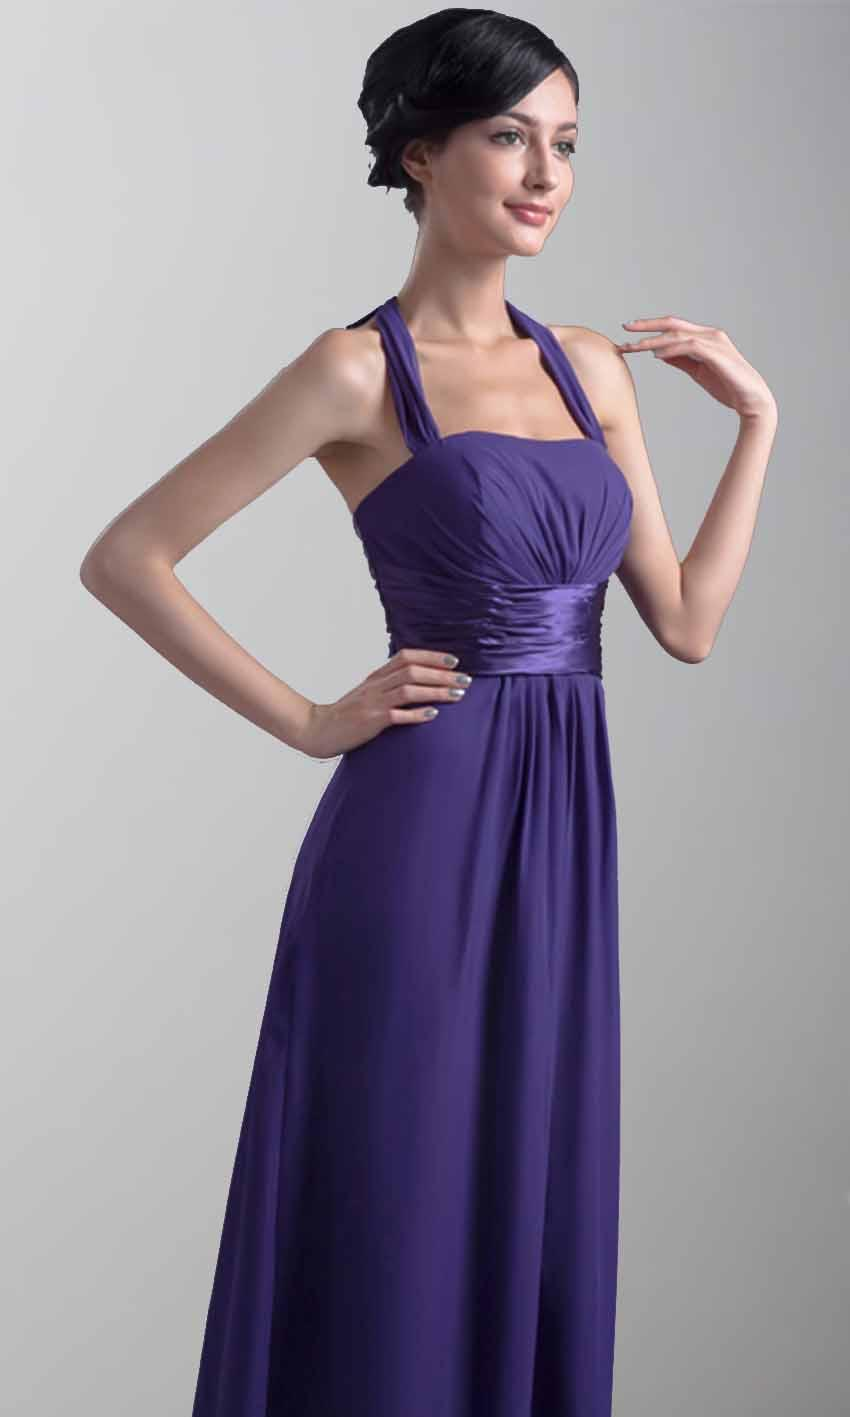 Inexpensive Purple Bridesmaid Dresses Choice Image - Braidsmaid ...